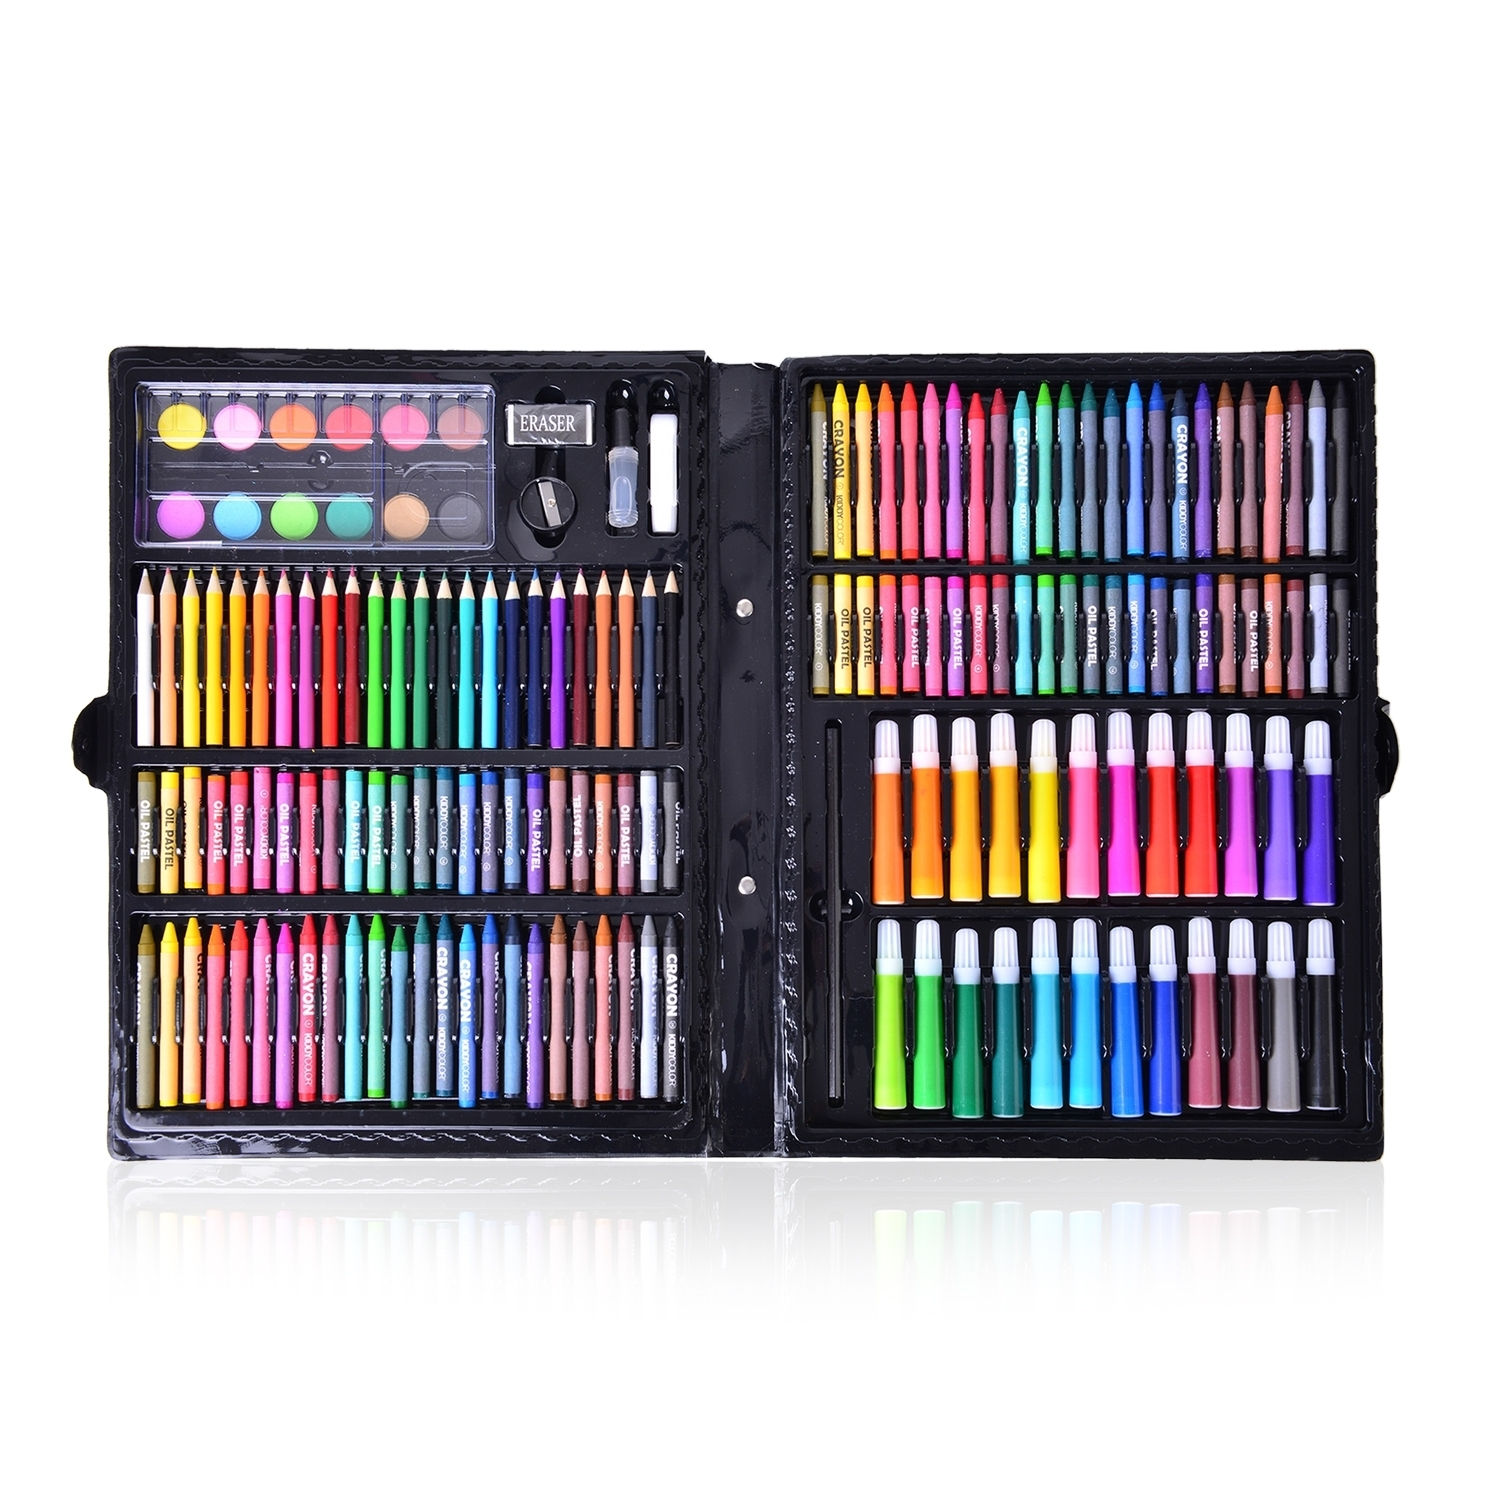 150 Piece Deluxe Art Supply Set Coloring Pencils Crayons Oil Pastels Markers Water Paint Eraser Pencil Sharpener Liquid Glue And White